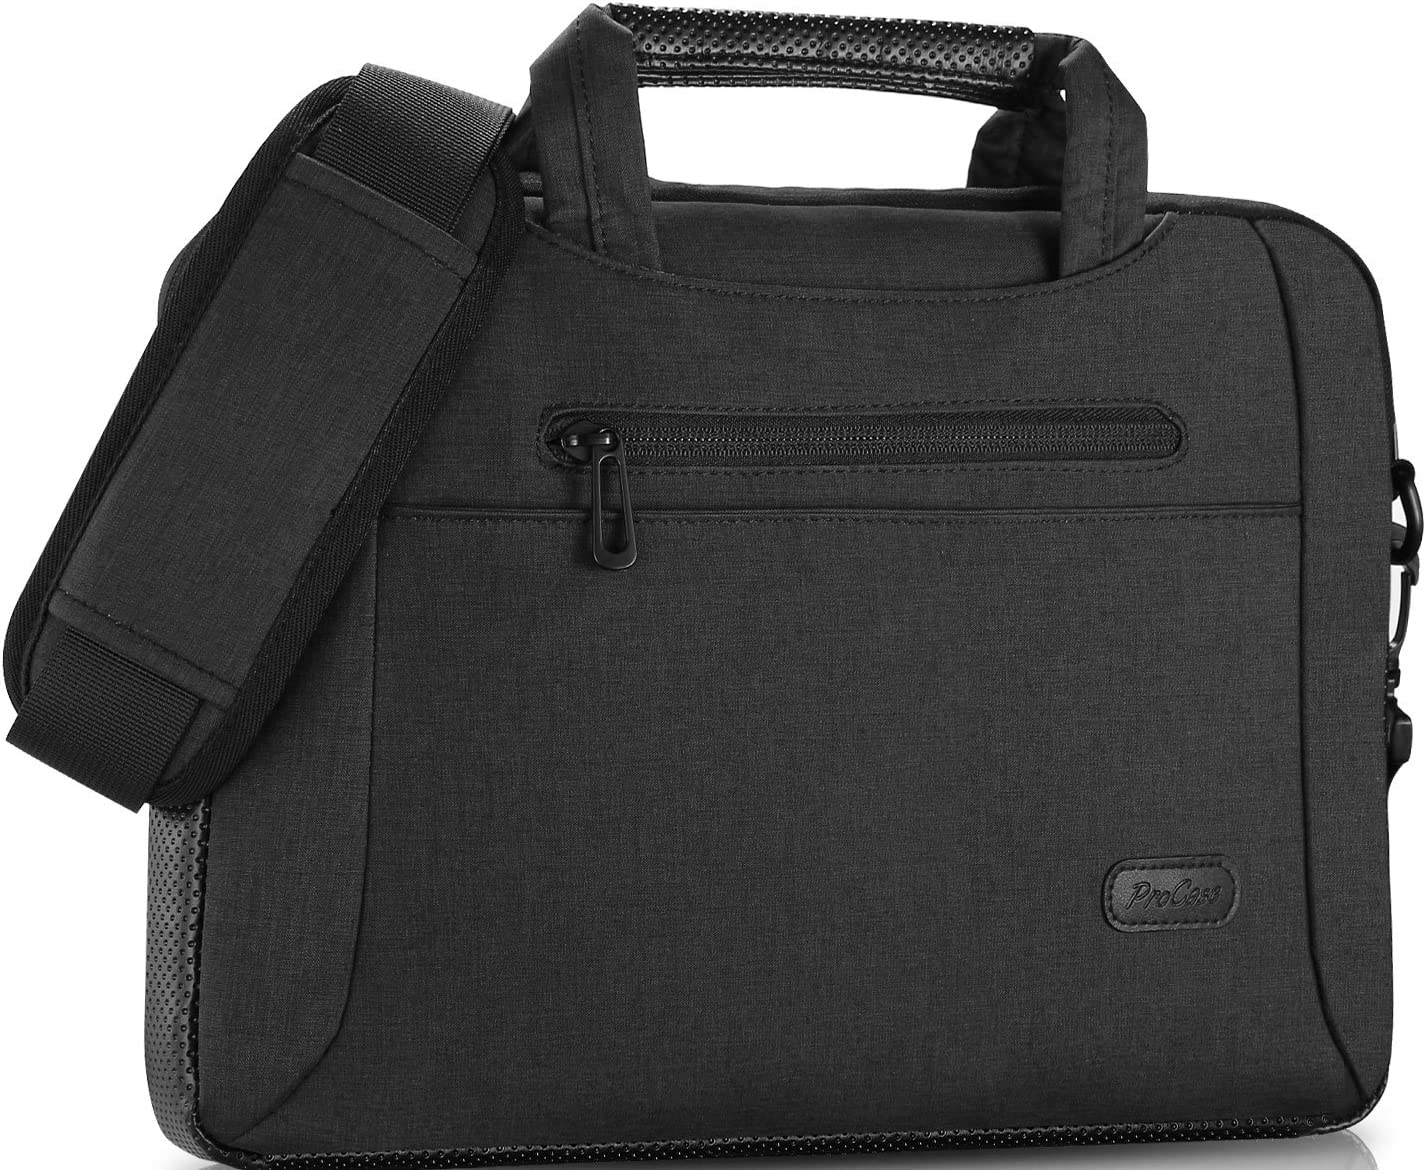 "ProCase 11-12 Inch Laptop Messenger Shoulder Bag Briefcase Sleeve Case for 12"" MacBook Surface Pro X 2017/Pro 7 6 4 3, 11 12 Inch Laptop Ultrabook Tablet Notebook MacBook Chromebook Computer -Black"